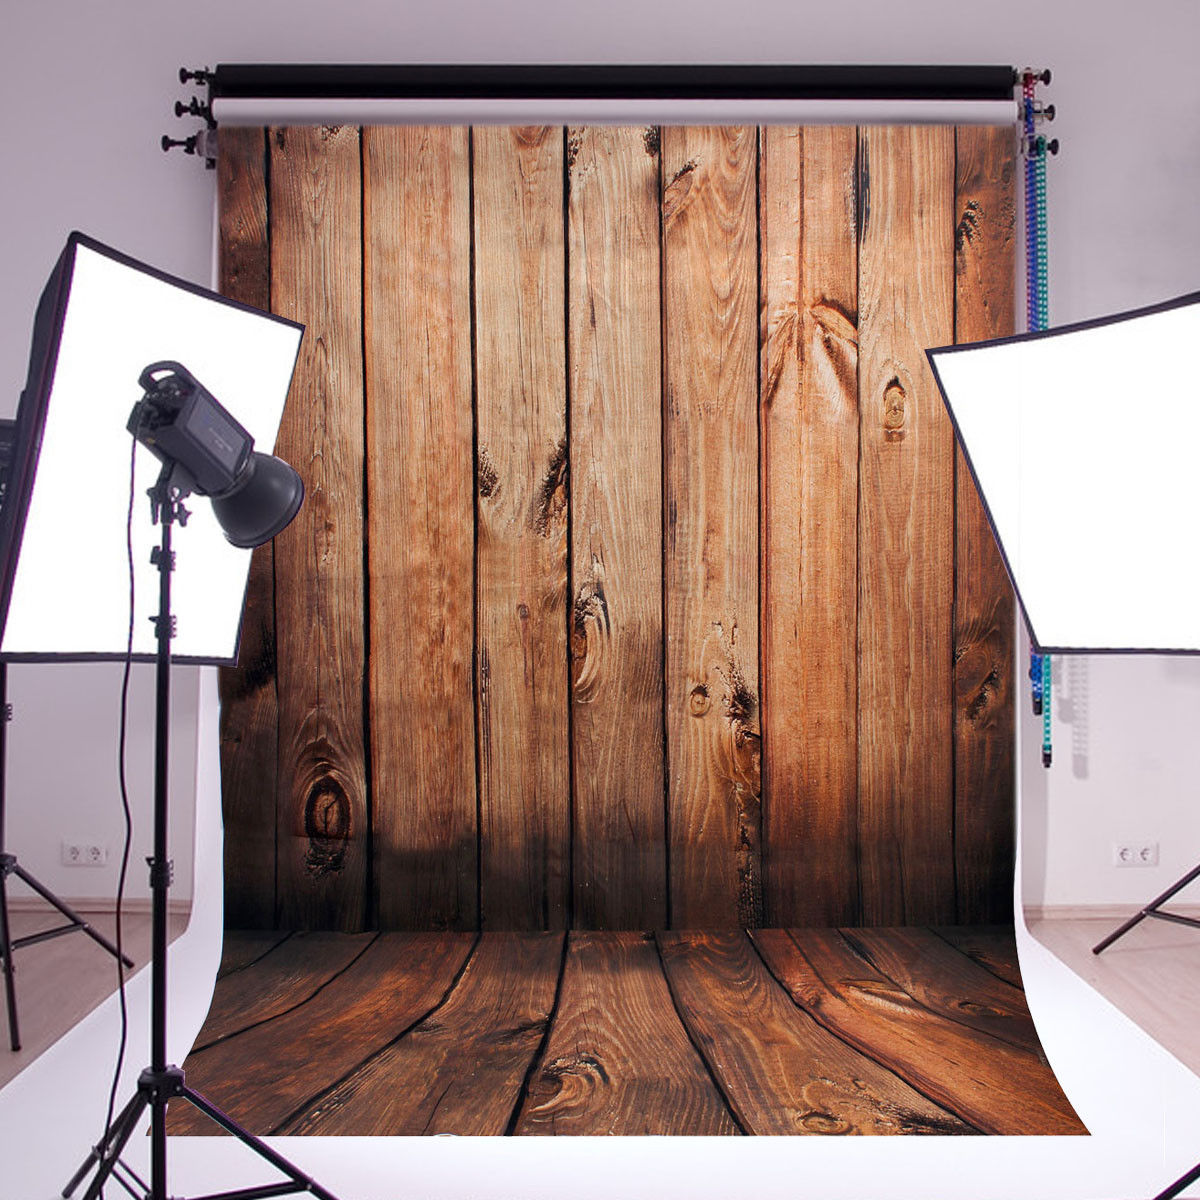 Photography Backdrops vinyl background for photo studio vintage wood baby background 2.1*1.5m Hot Sale romantic sea beach photography backdrops vinyl background for holiday photo studio photography background props photophone